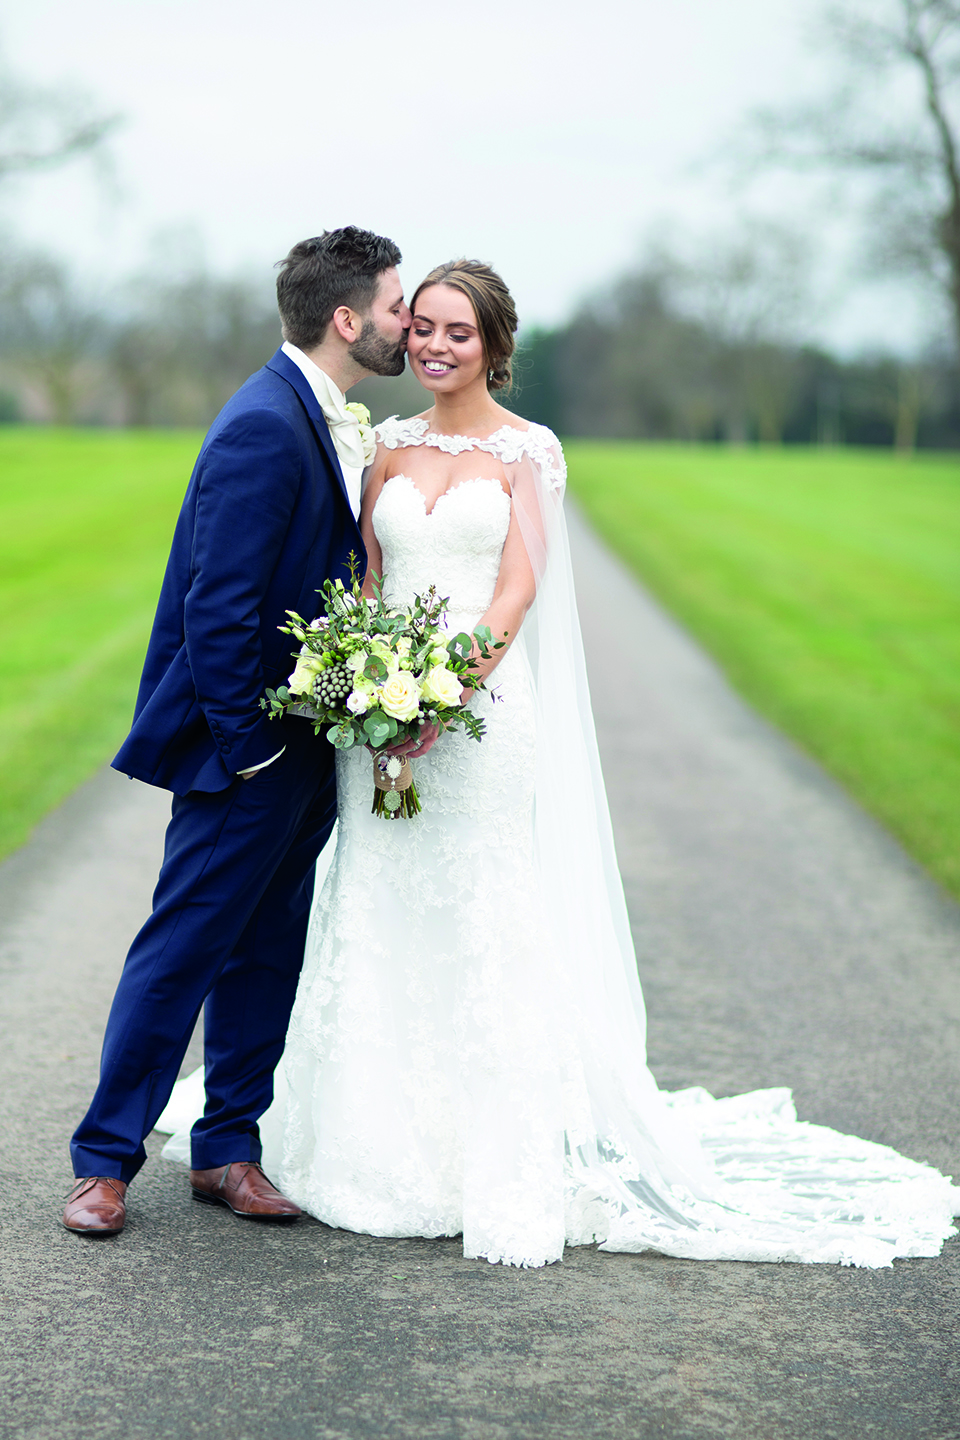 The bride holds a green and ivory wedding bouquet as the newlyweds enjoy a moment away from guests at Bassmead Manor Barns